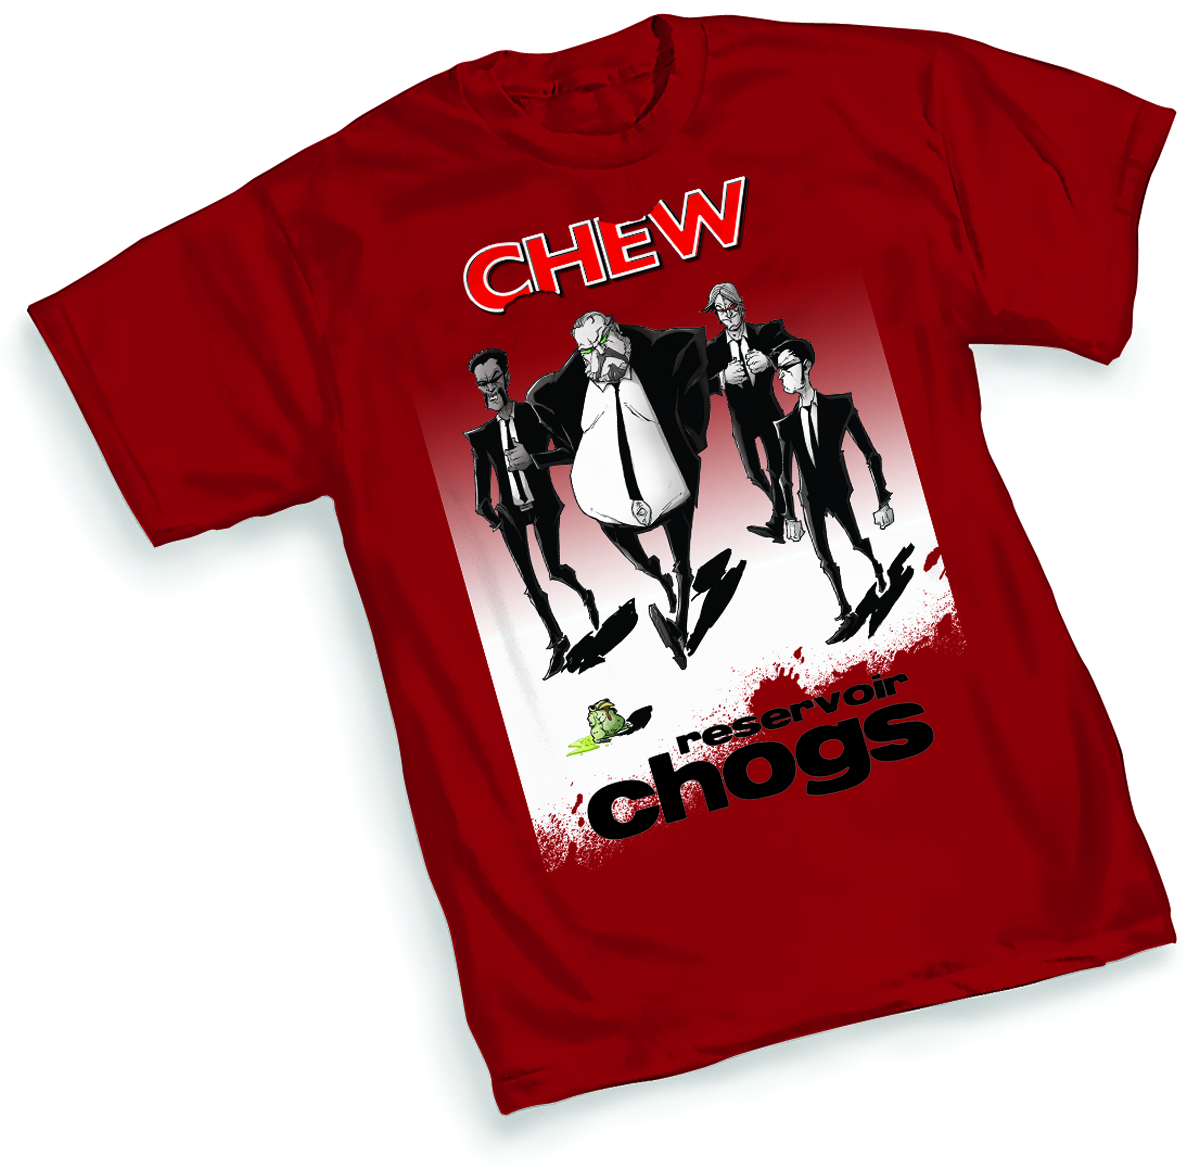 CHEW RESERVOIR CHOGS BY GUILLORY T/S XL